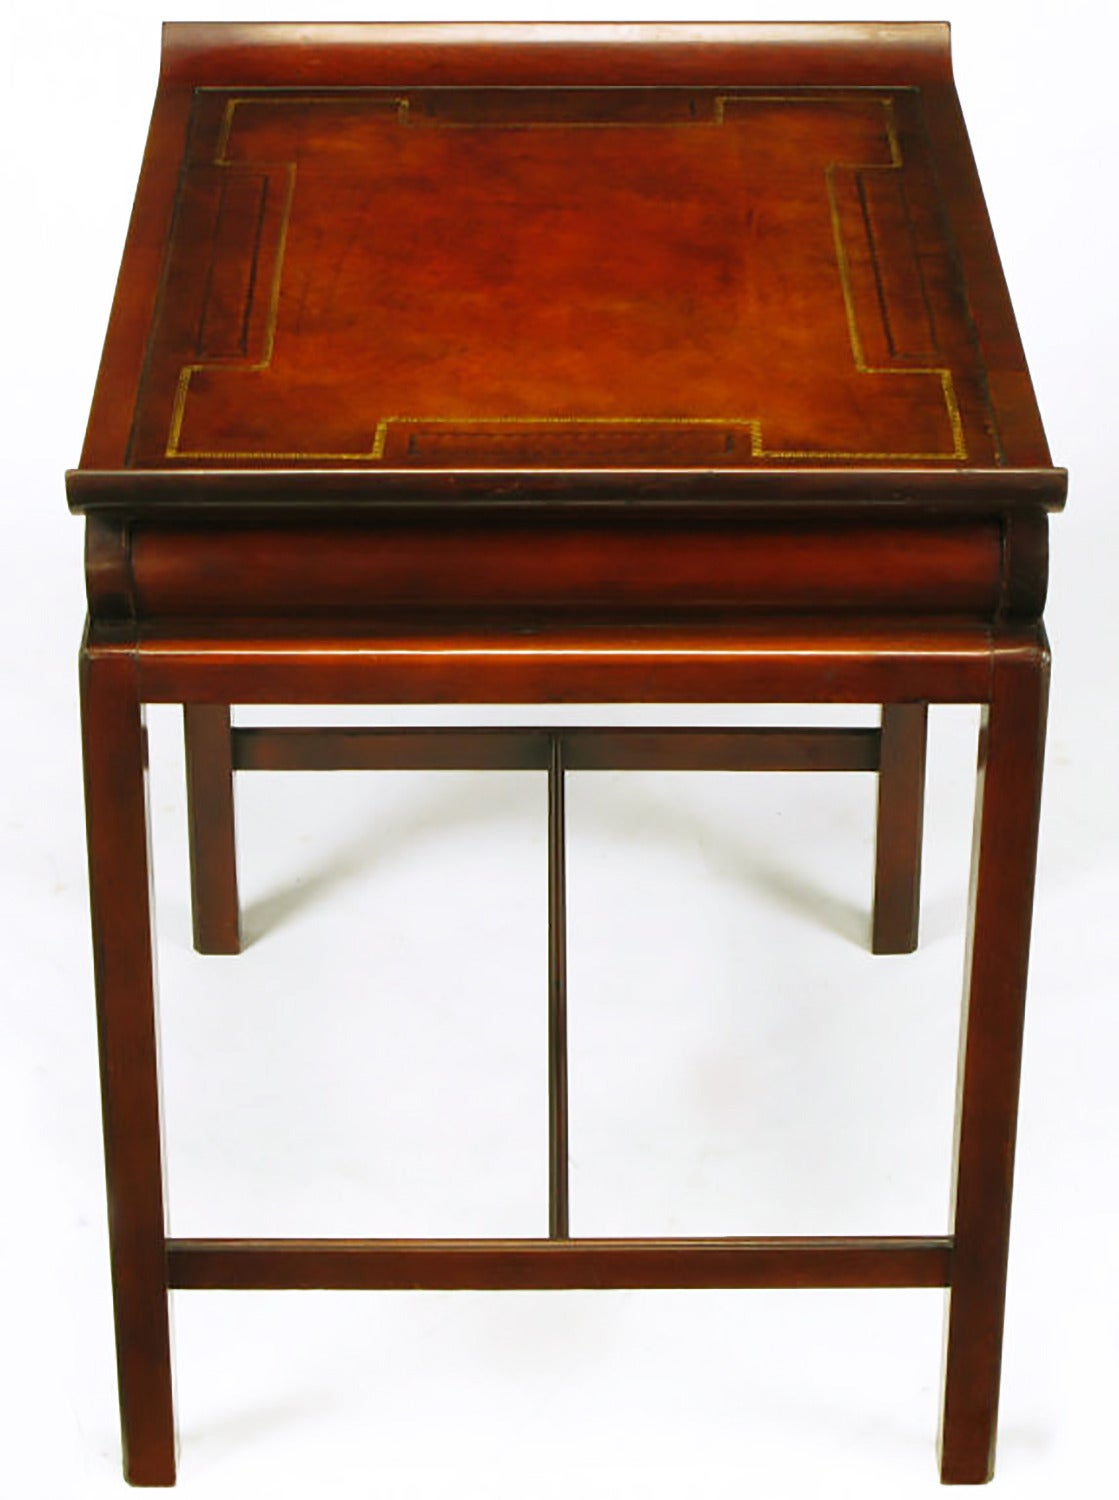 Pair of Curved Mahogany and Leather Top End Tables with Greek Key Reliefs 6